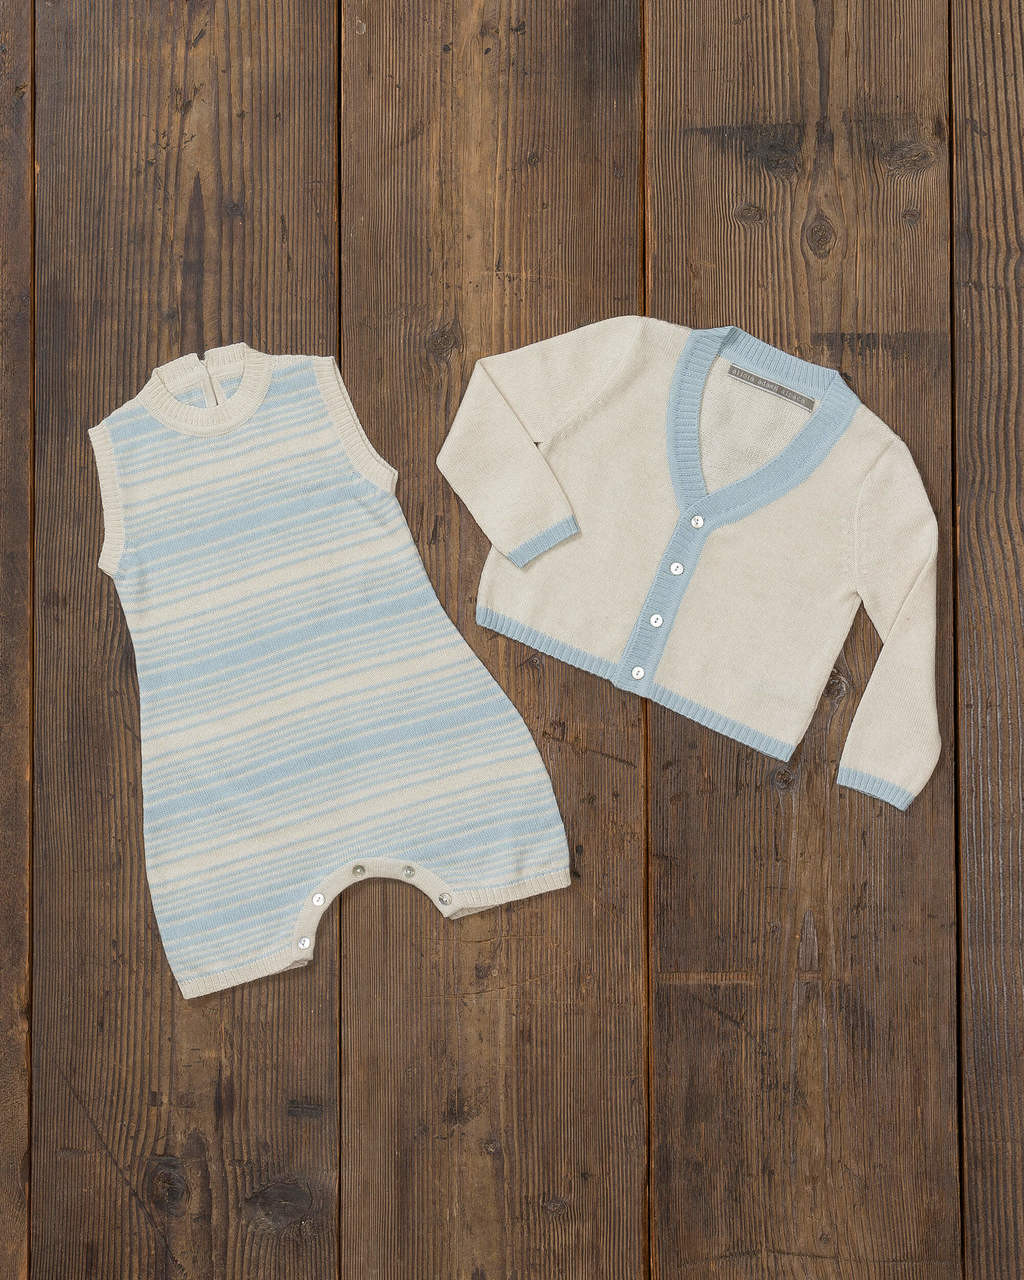 Alicia Adams Alpaca Samie Onesie and Cardigan set, ultimate gift for baby and mommy, baby alpaca onesie, light blue and ivory baby alpaca clothing set